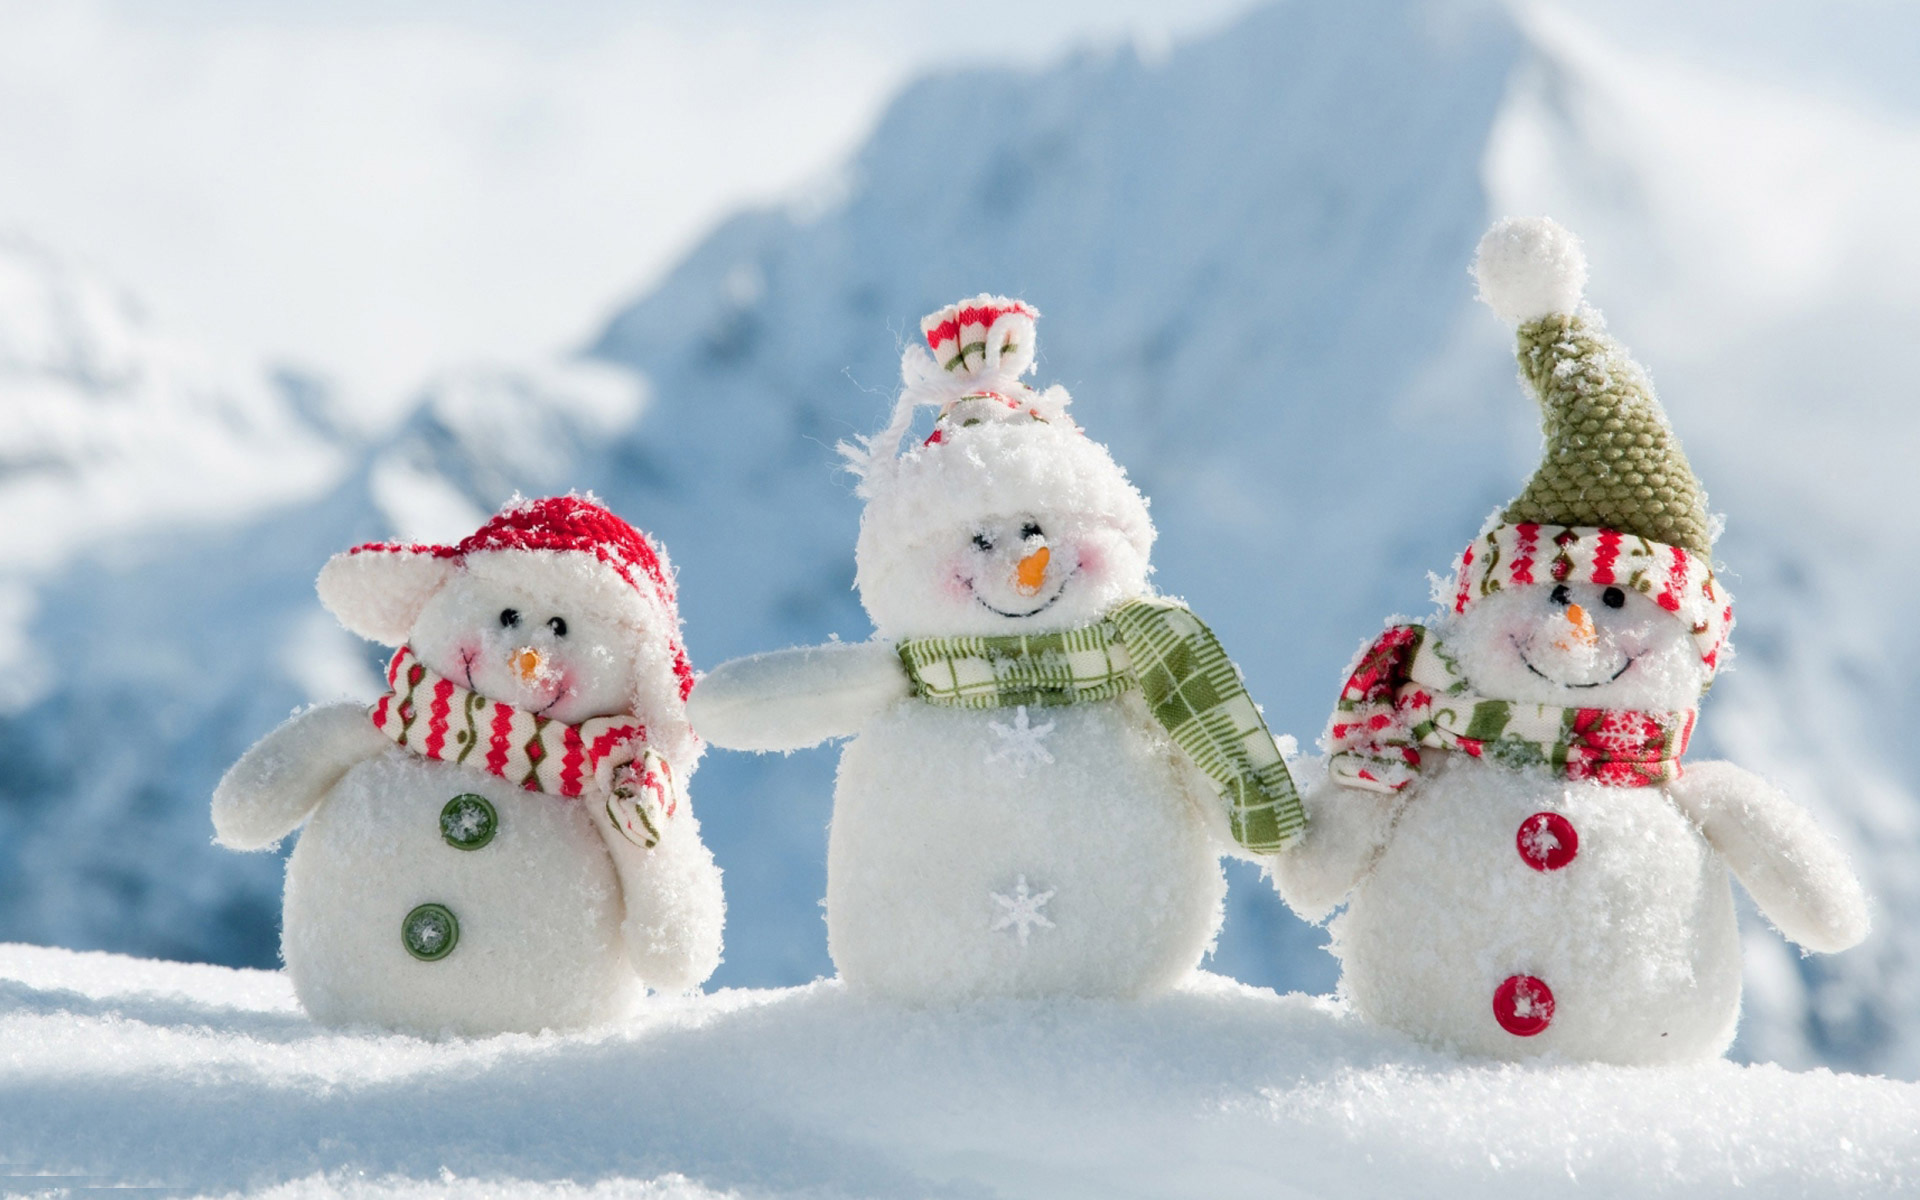 Download Snowman Wallpaper